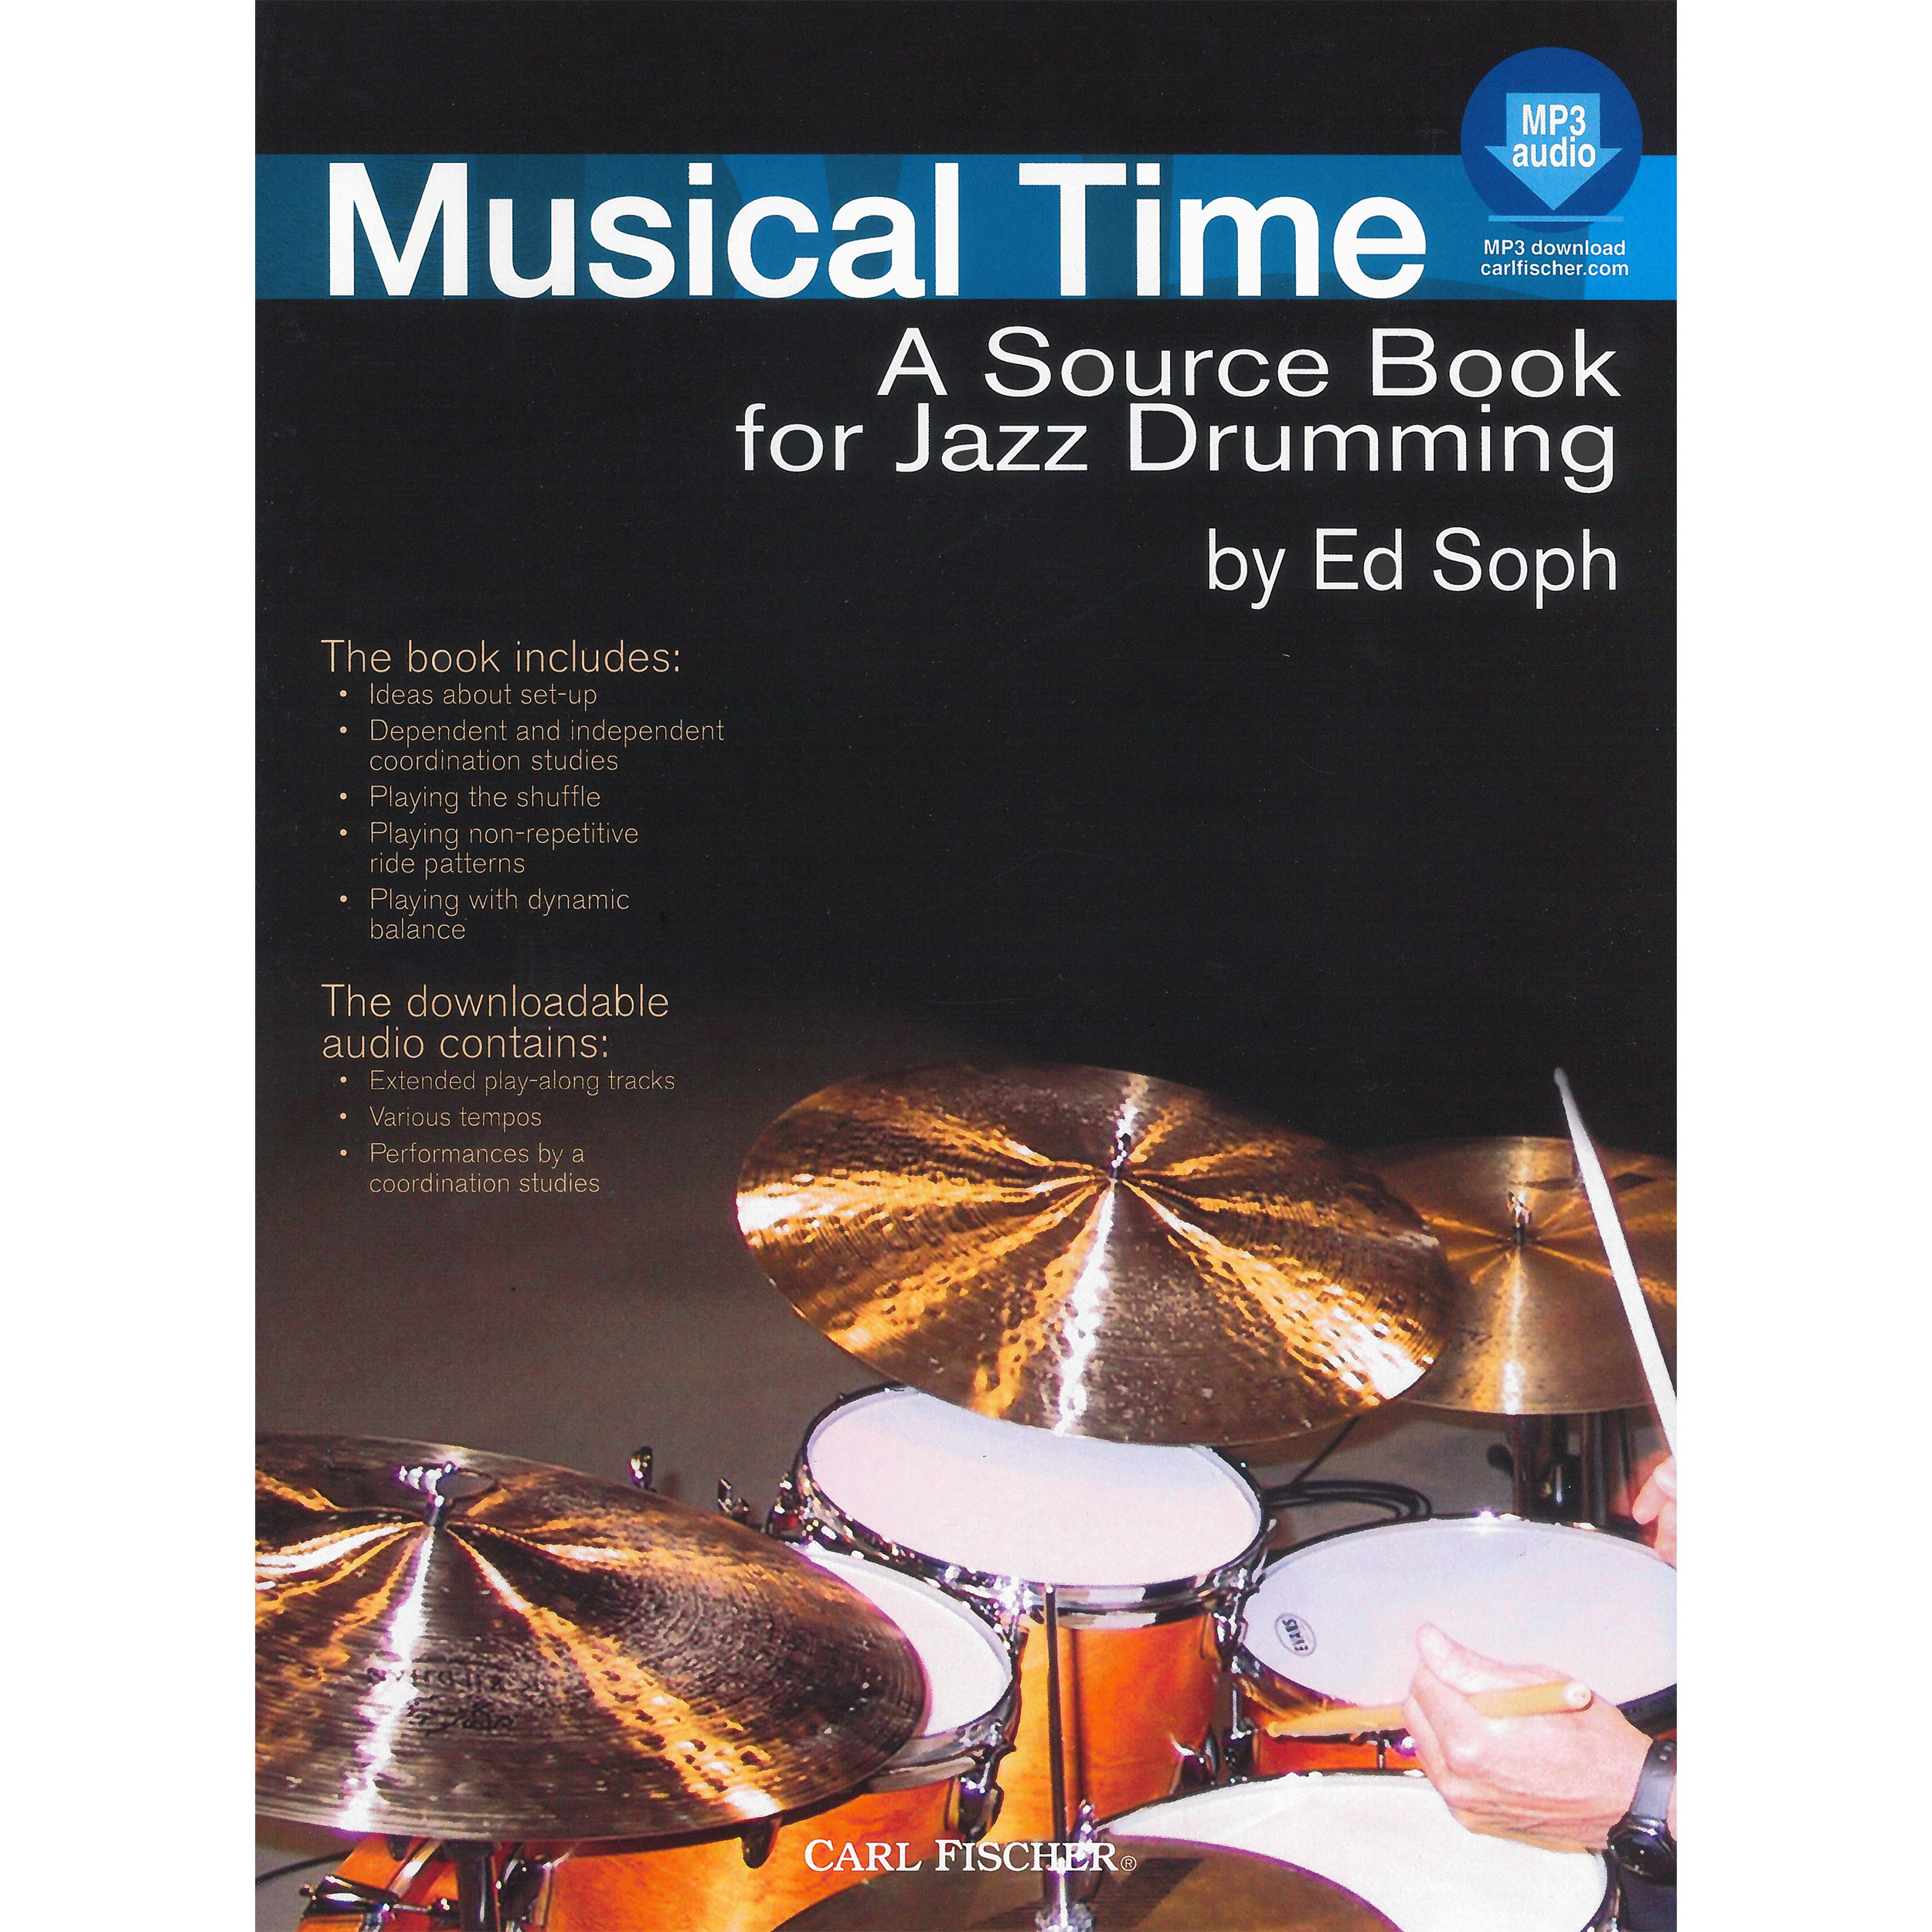 Musical Time: A Source Book for Jazz Drumming by Ed Soph